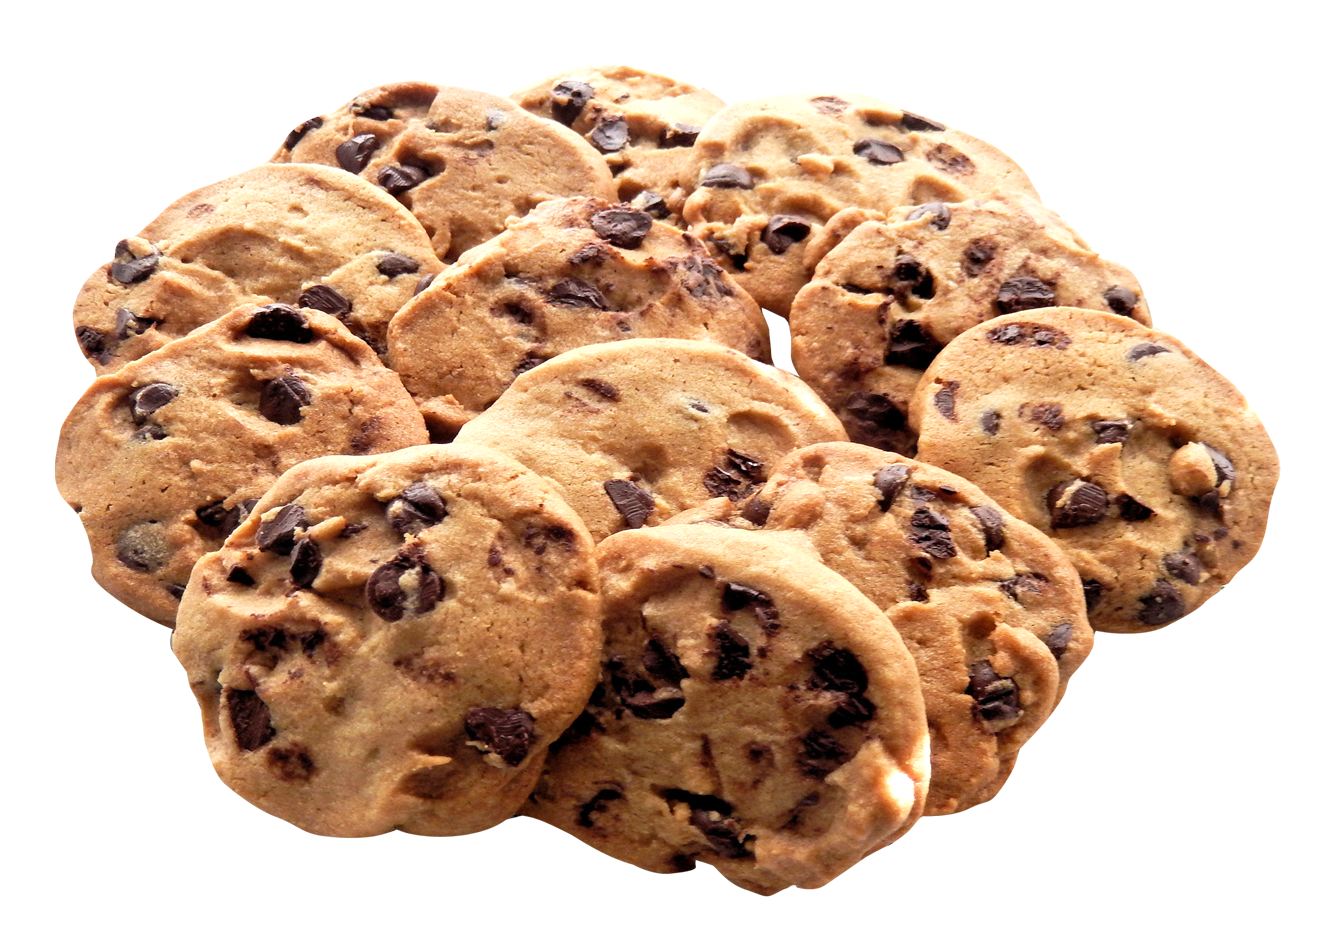 chocolate cookie png transparent image pngpix #23046